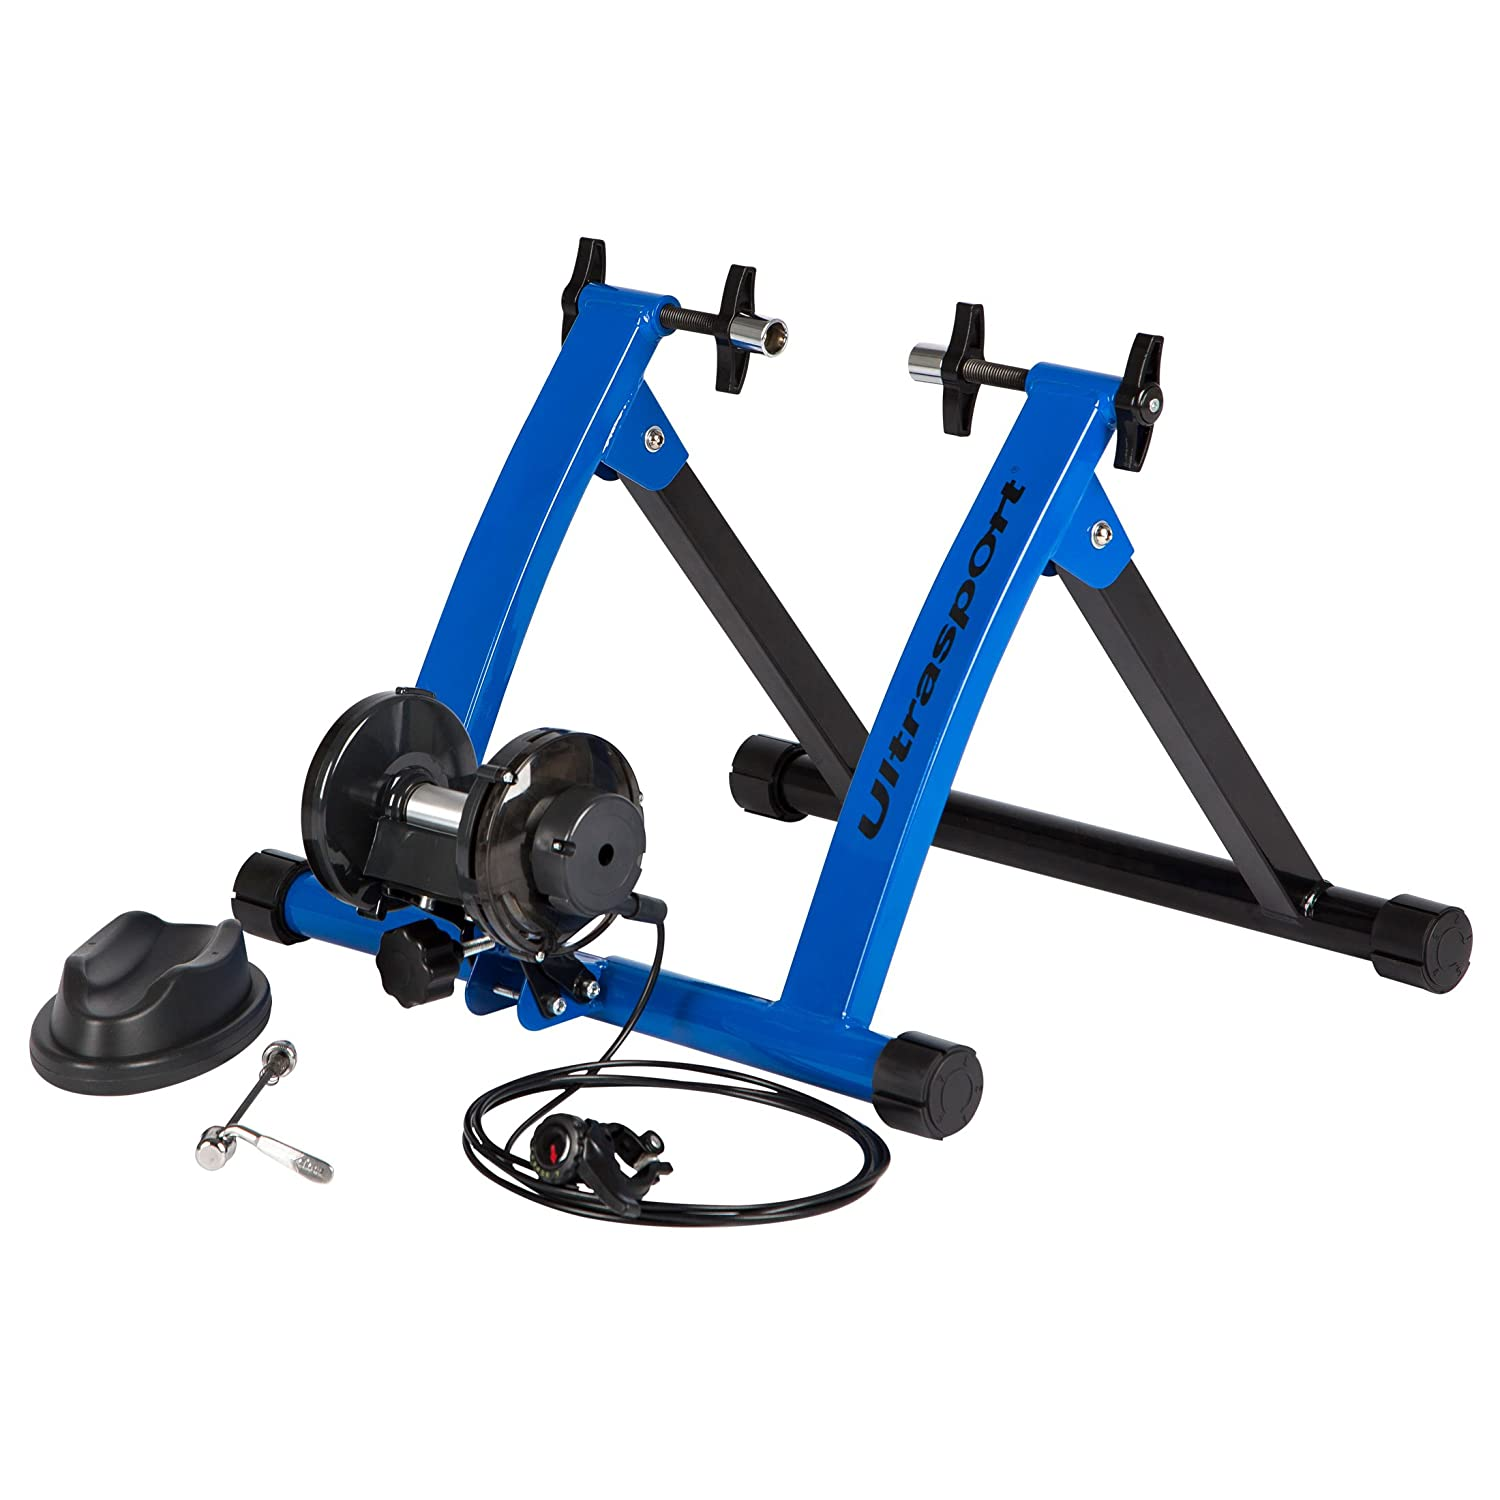 Ultrasport Bicycle Exerciser Set with Gears – TÜV tested 3.309E+11